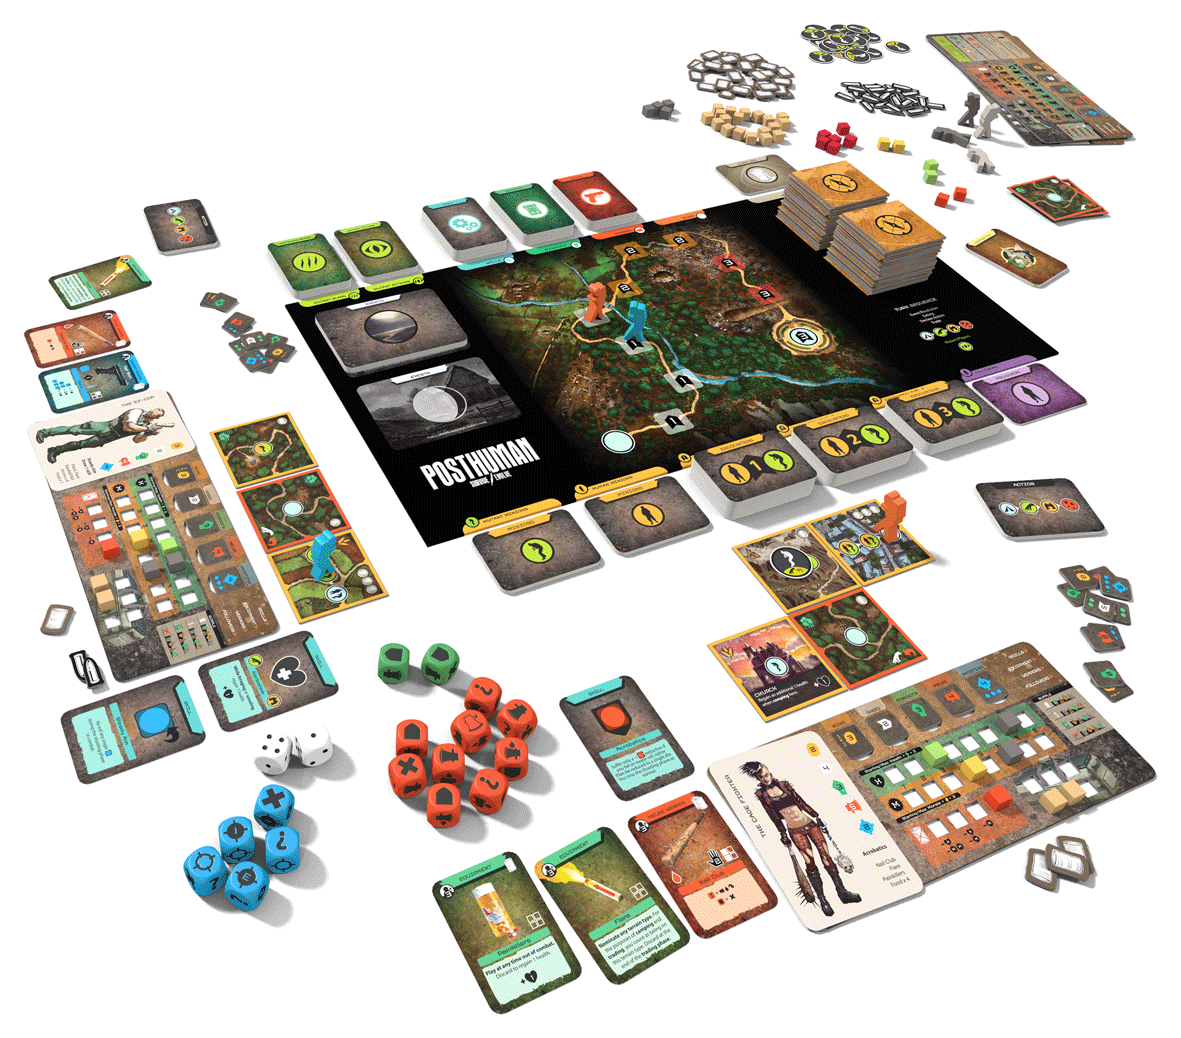 Posthuman - Board game components